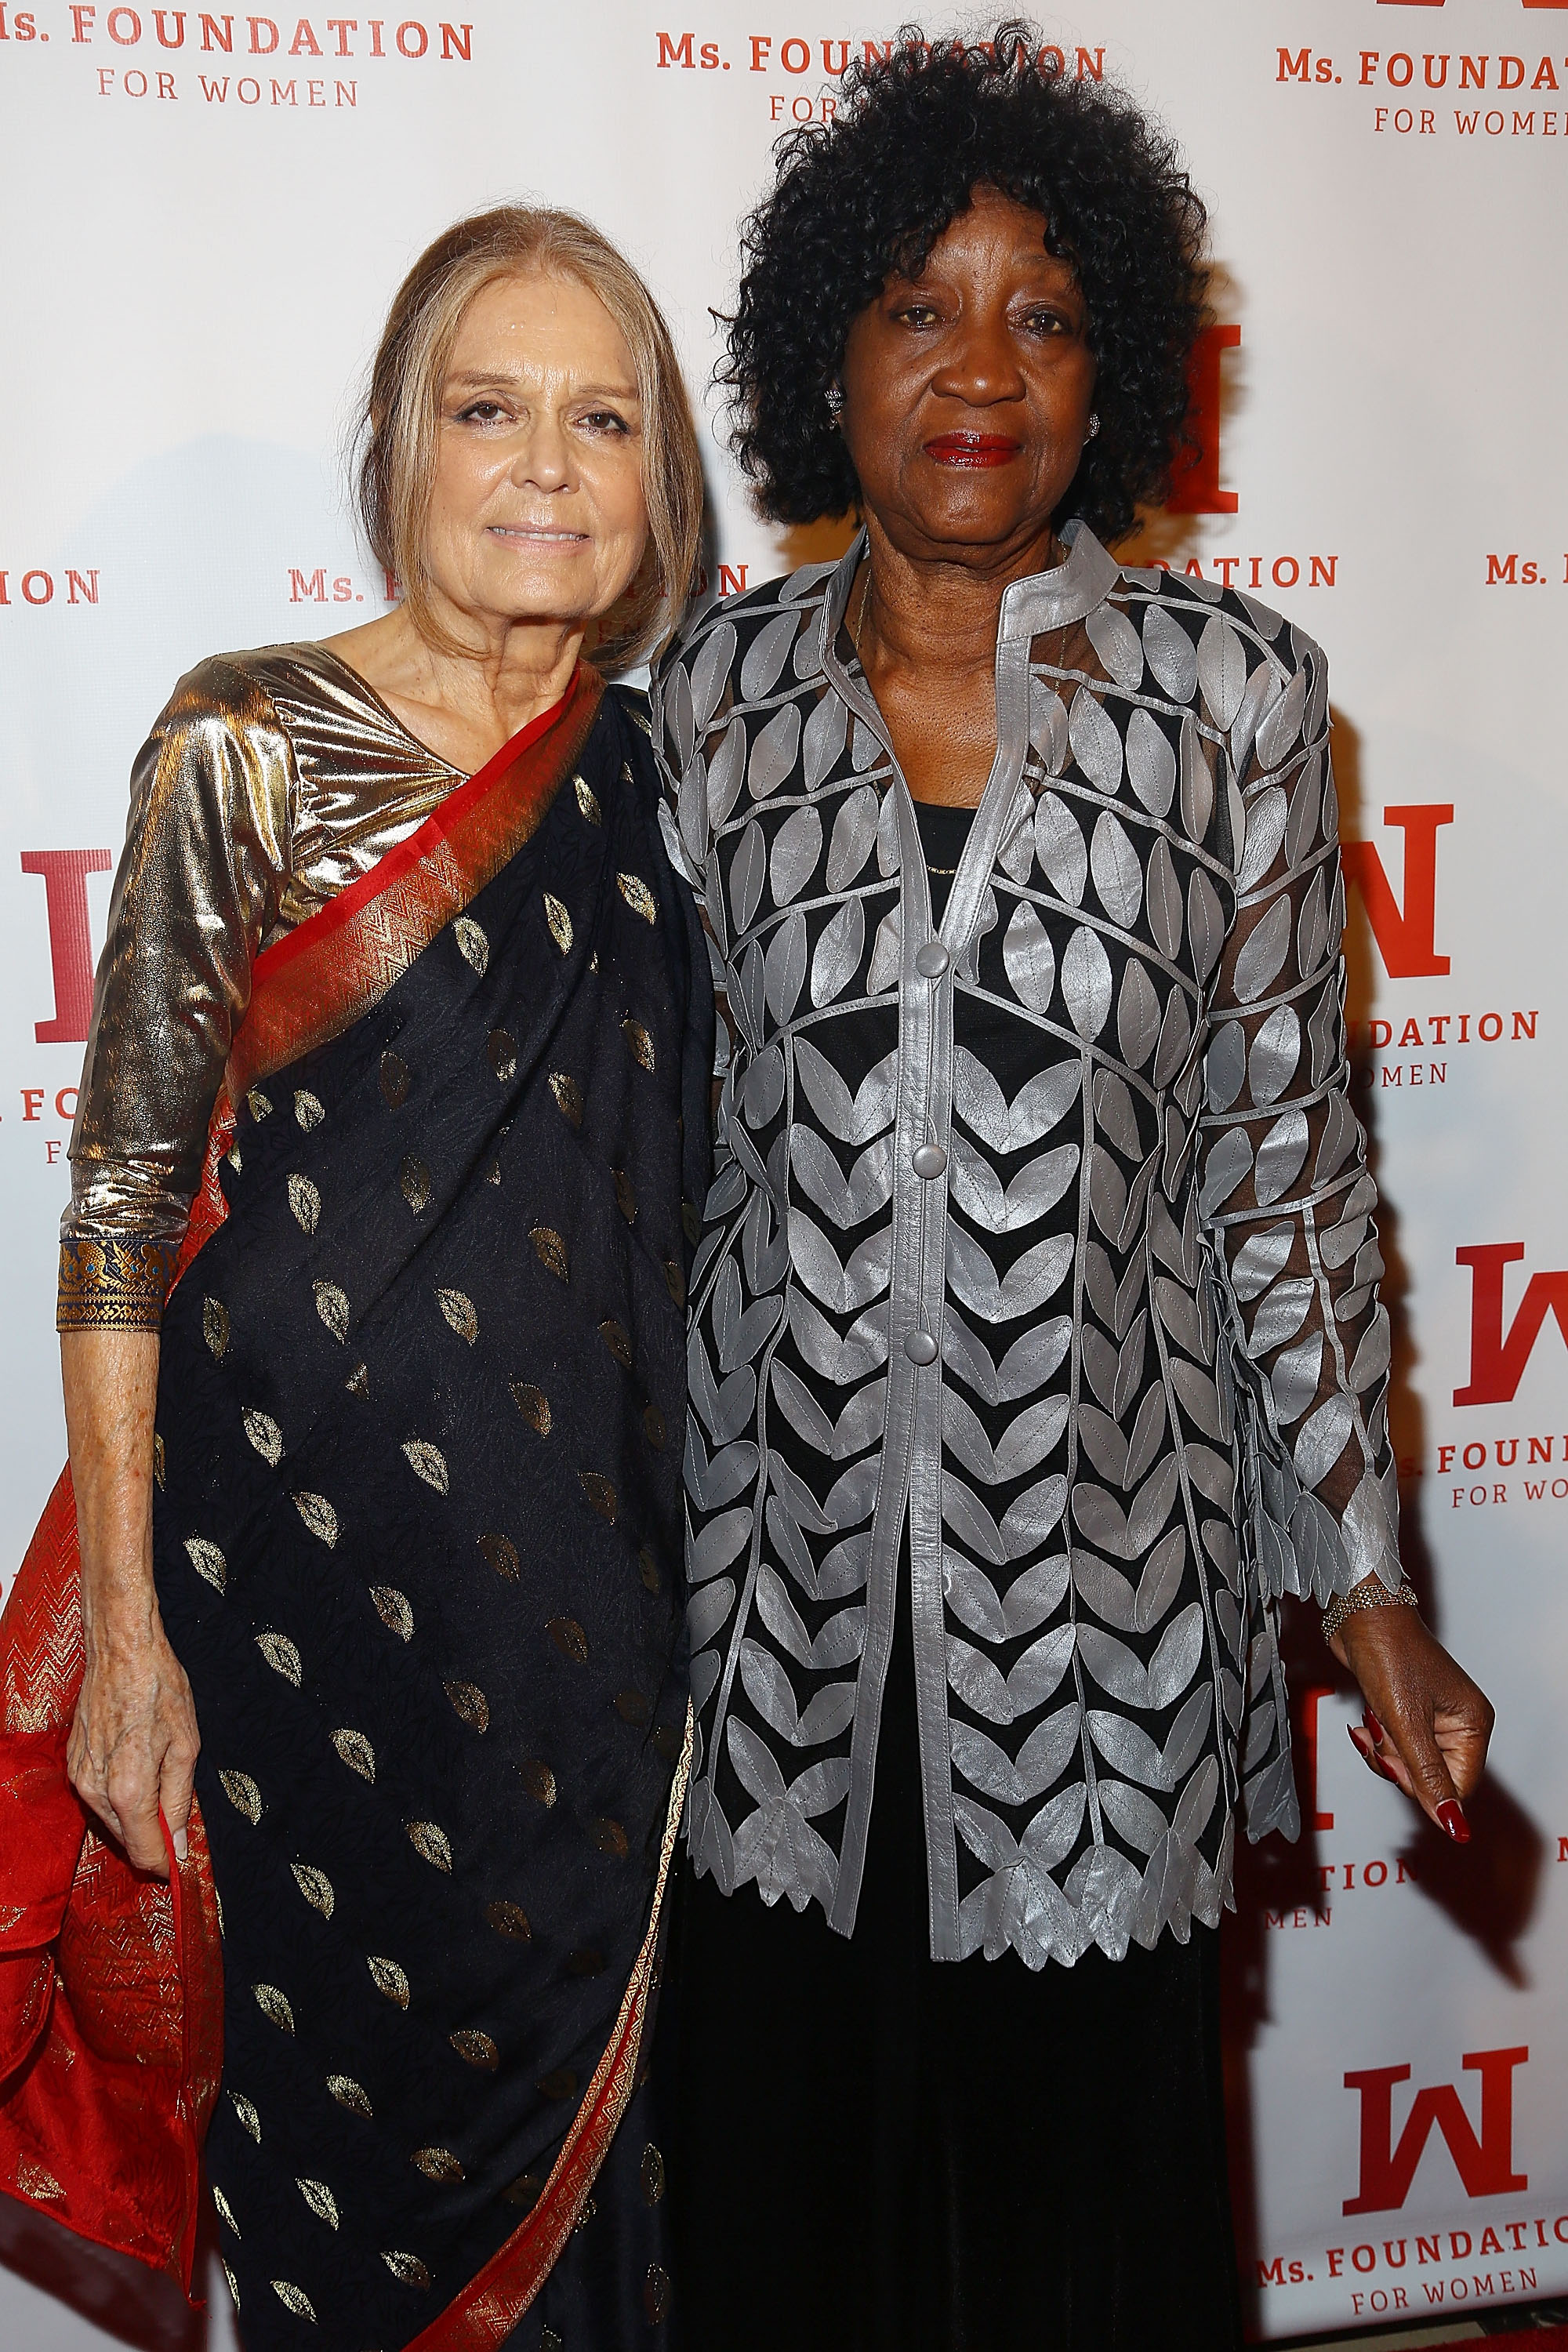 NEW YORK, NY - MAY 01: (L-R) Gloria Steinem and Dorothy Pitman Hughes attend the Ms. Foundation Women Of Vision Gala 2014 on May 1, 2014 in New York City. (Photo by Astrid Stawiarz/Getty Images for Ms. Foundation For Women)